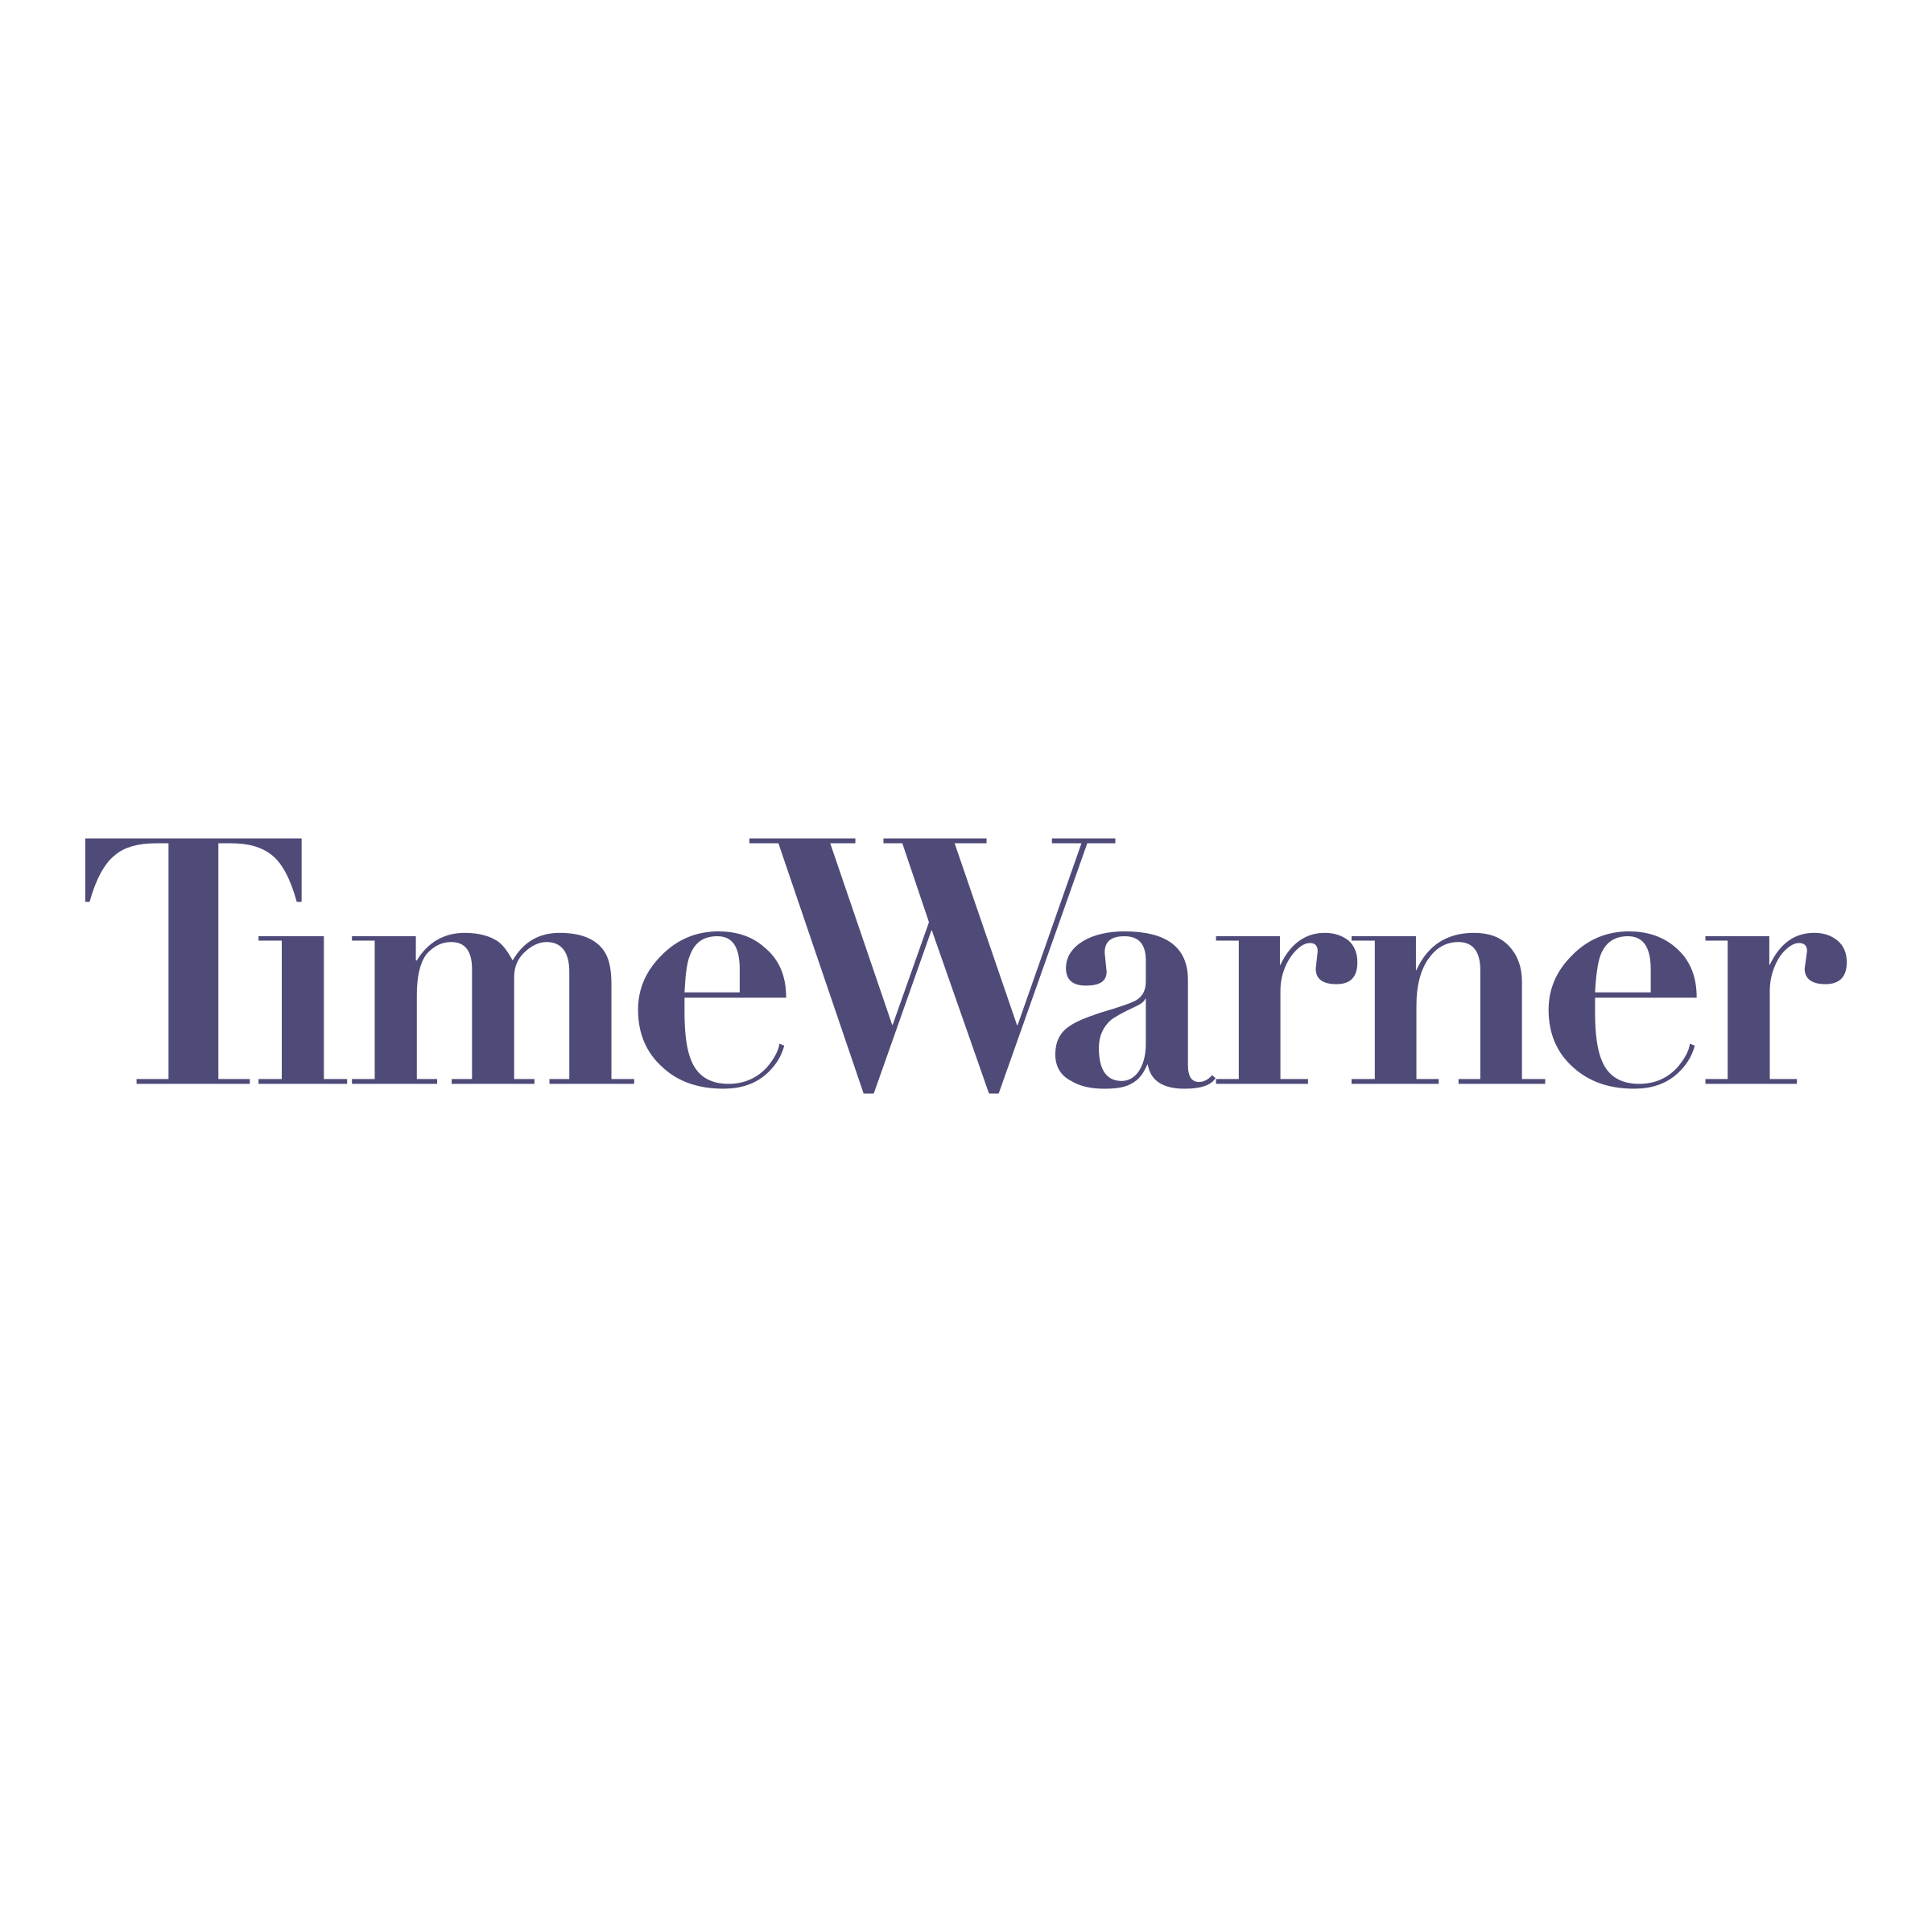 Time Warner Logo - Time Warner Logo PNG Transparent & SVG Vector - Freebie Supply